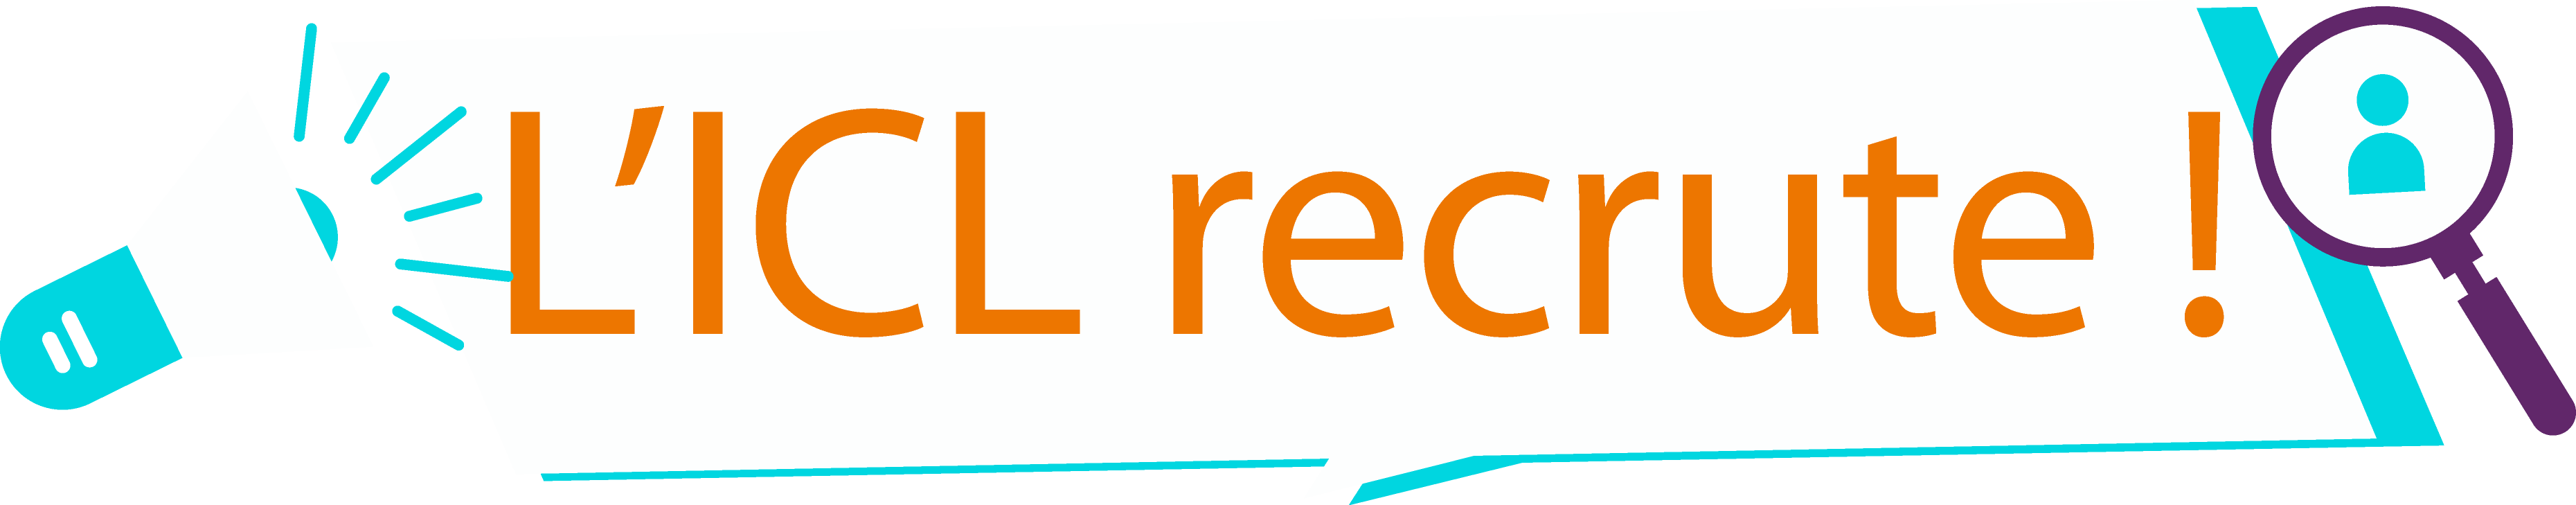 ICL recrute source orange web